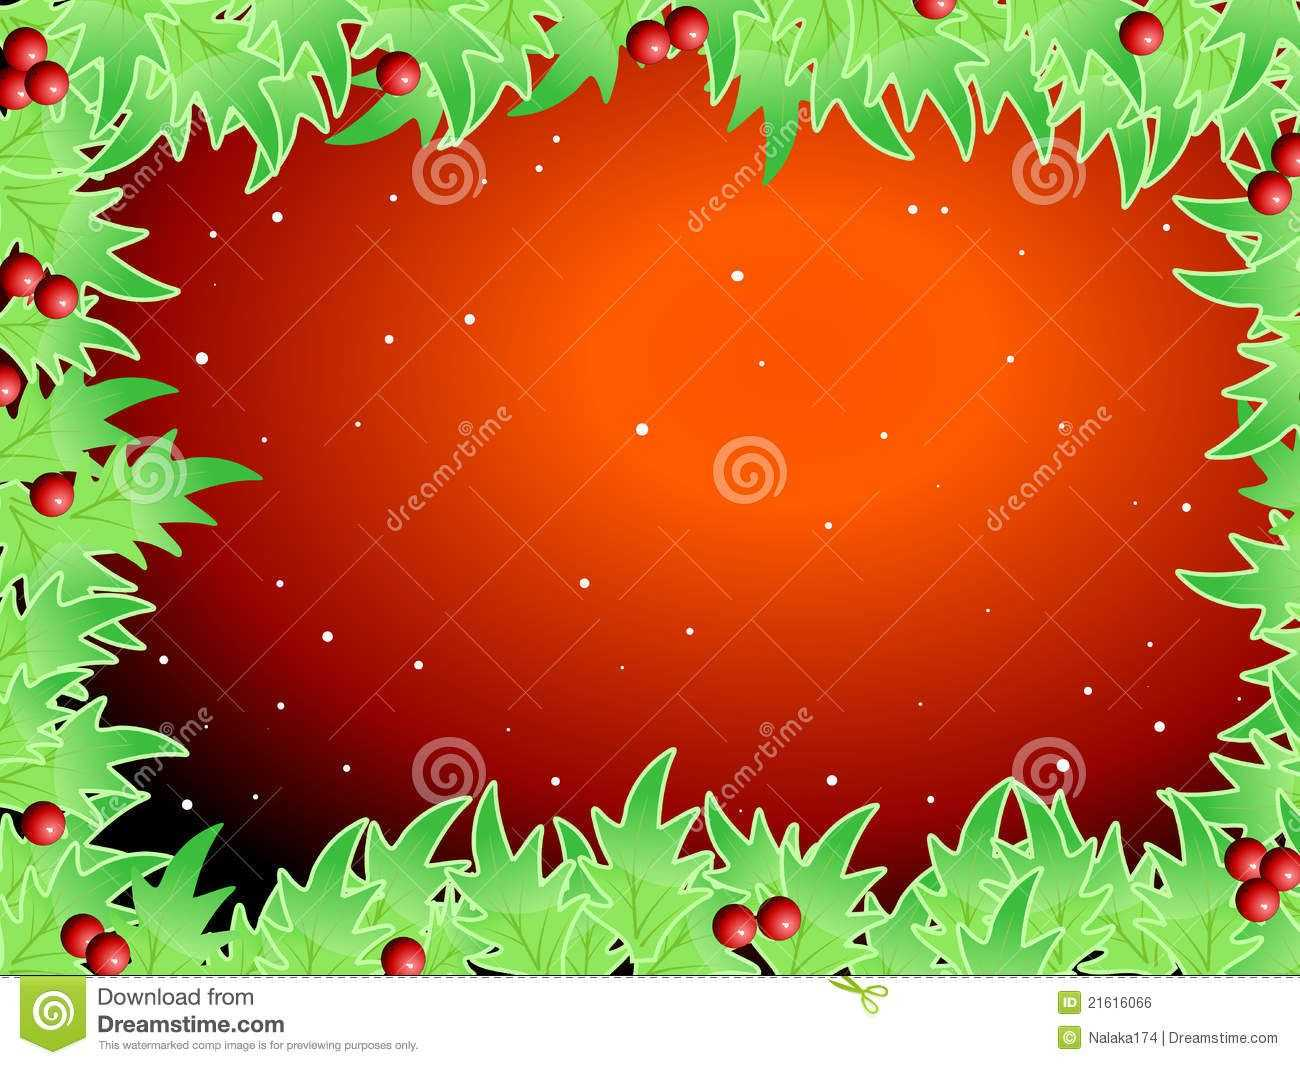 Blank Template For Christmas Greetings Card Royalty Free Regarding Blank Christmas Card Templates Free